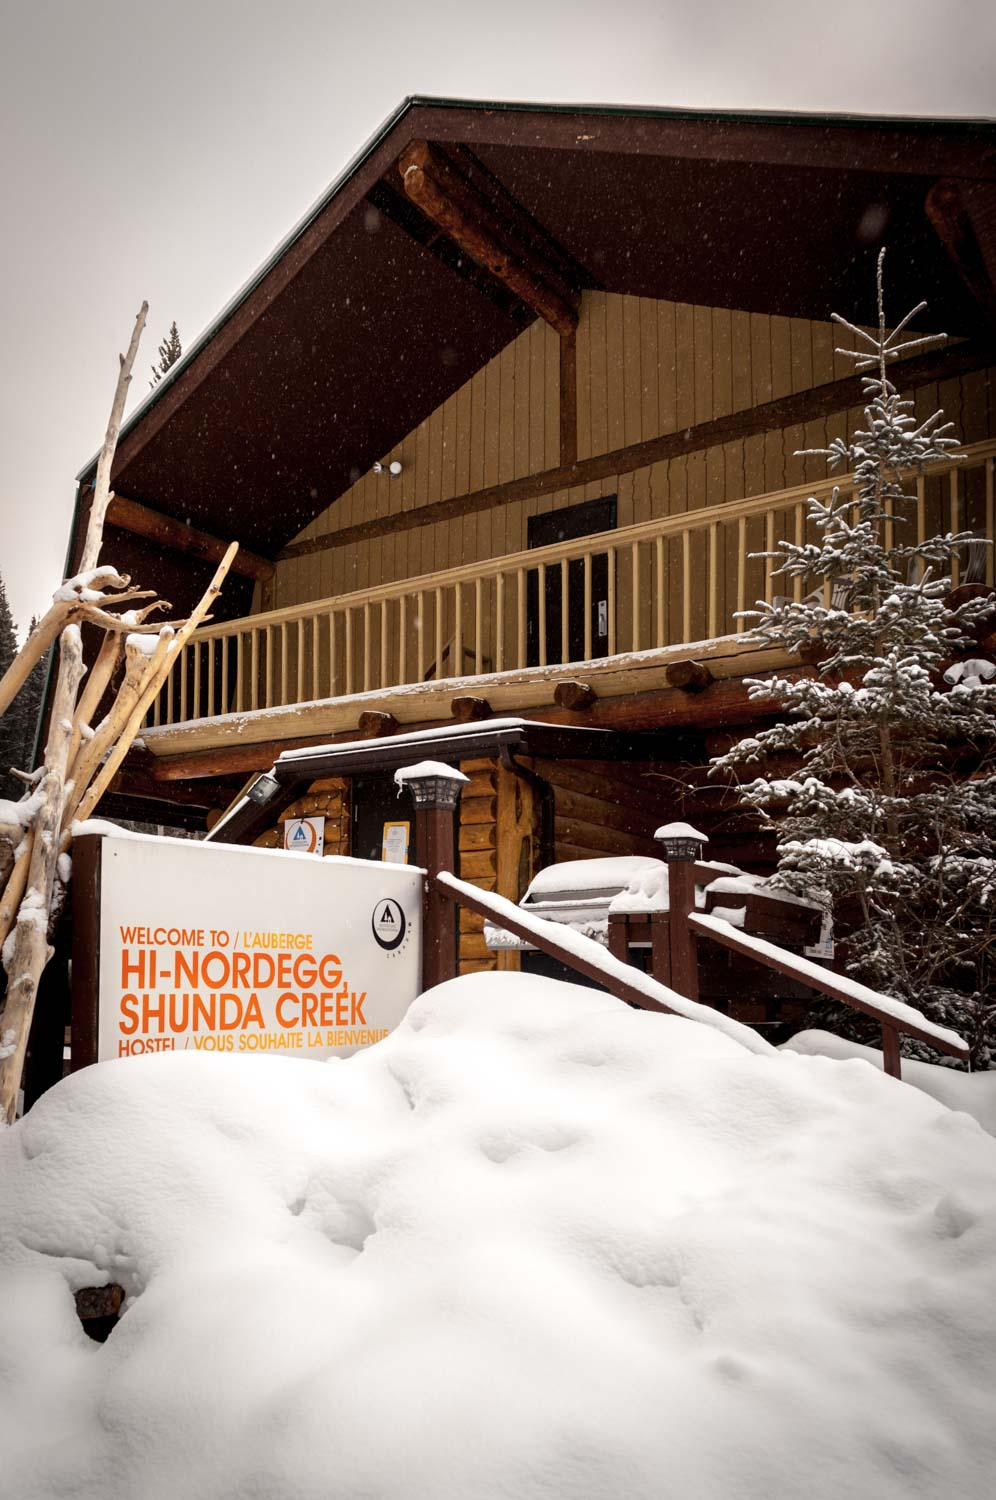 Shunda Creek Hostel